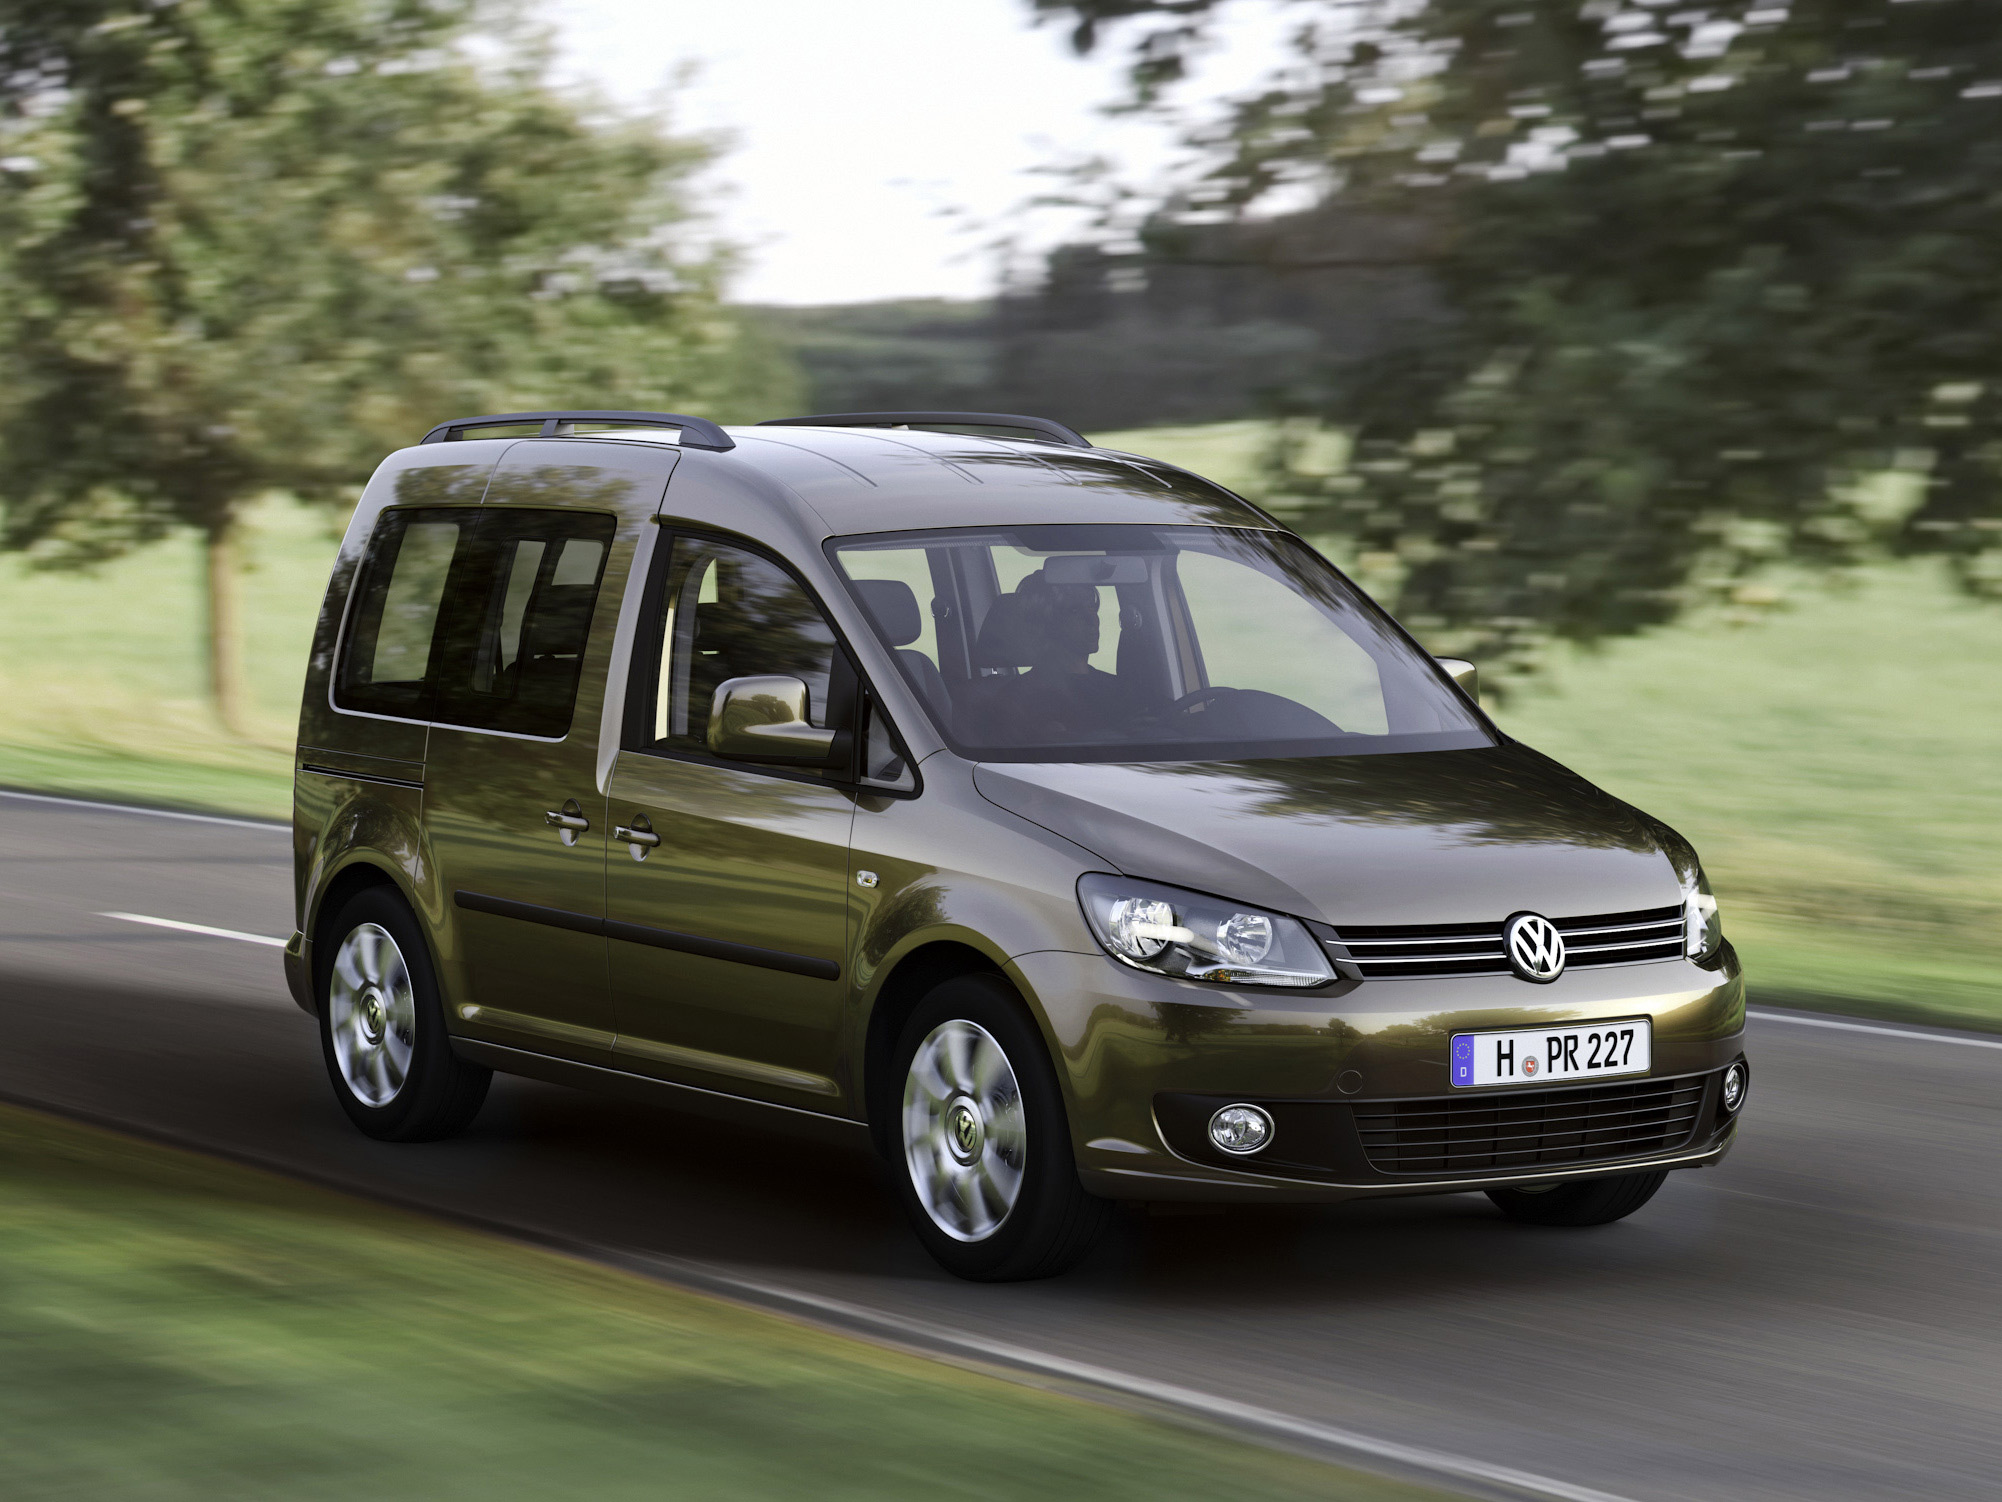 Фото автомобиля Volkswagen Caddy минивэн